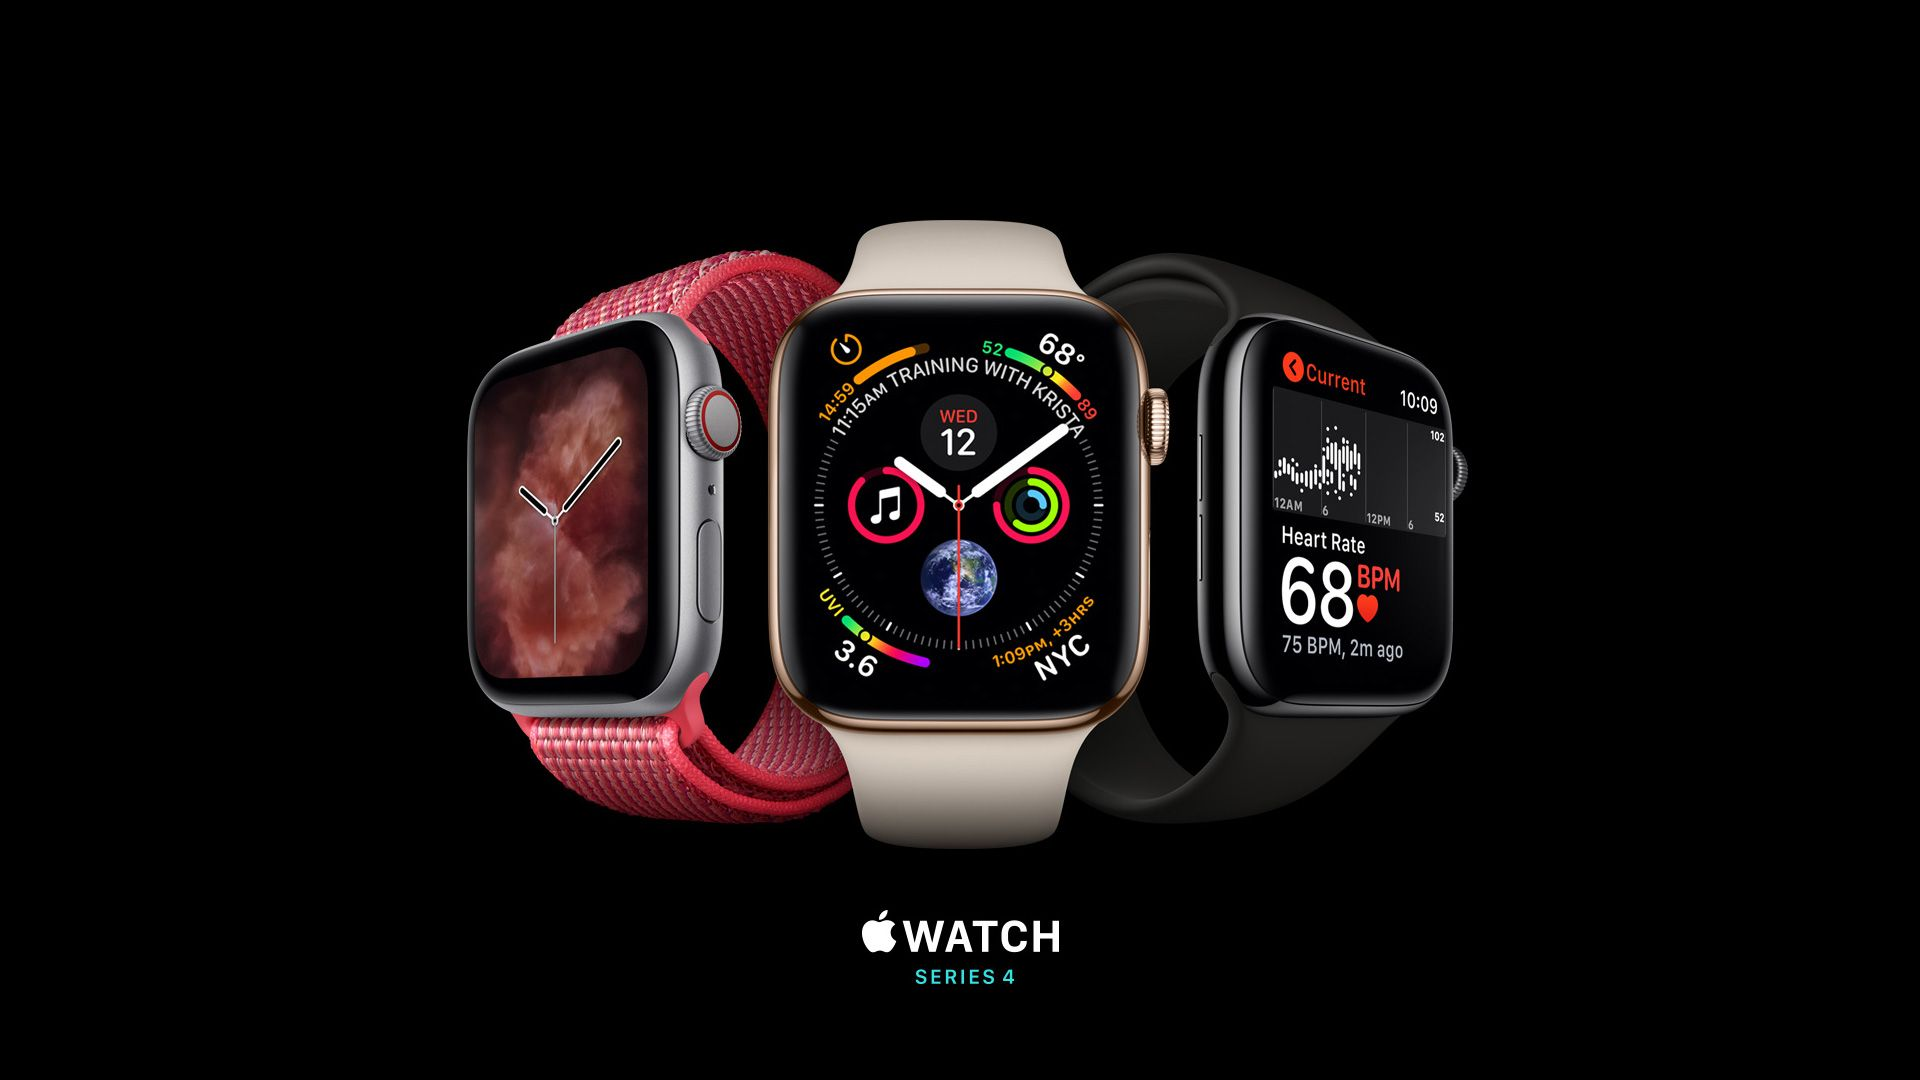 Apple Watch Series 4, silver, gold, black, Apple September 2018 Event (horizontal)